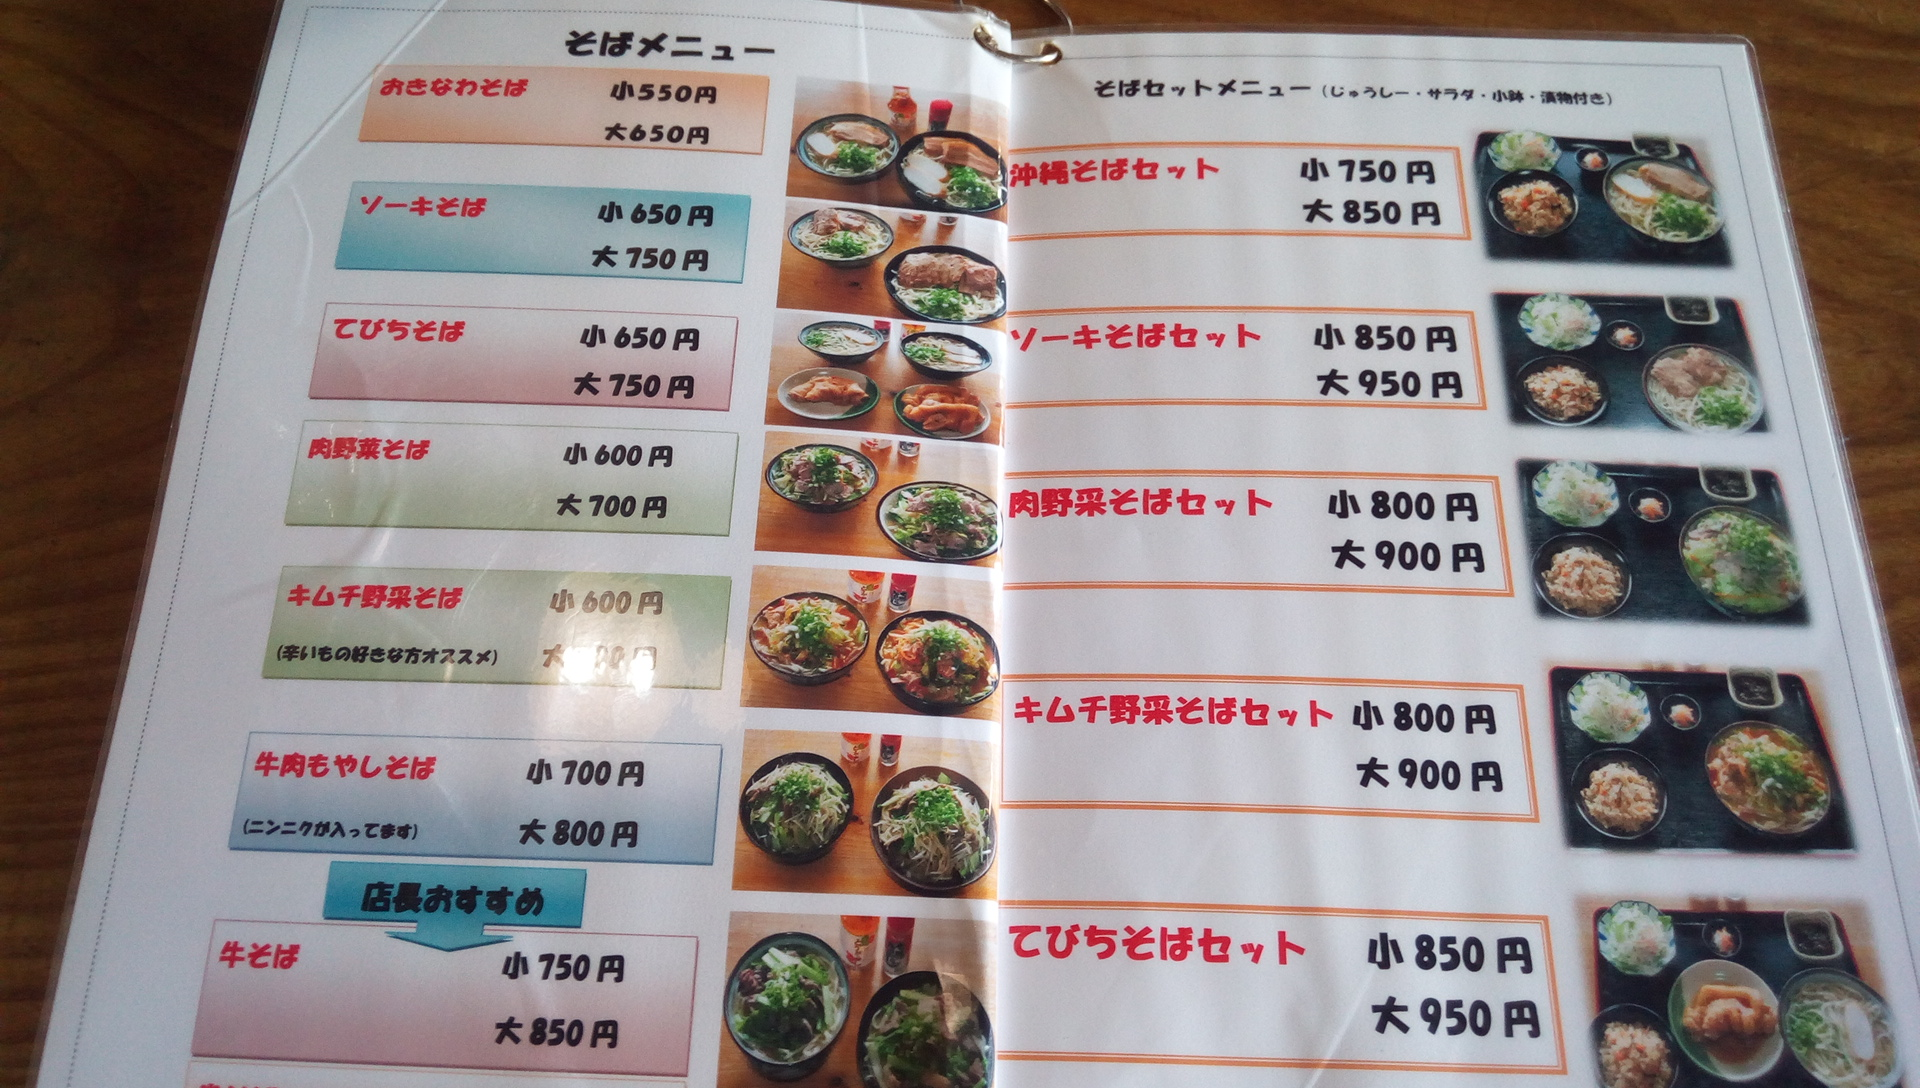 the menu of Sobaya Kirabaru 1